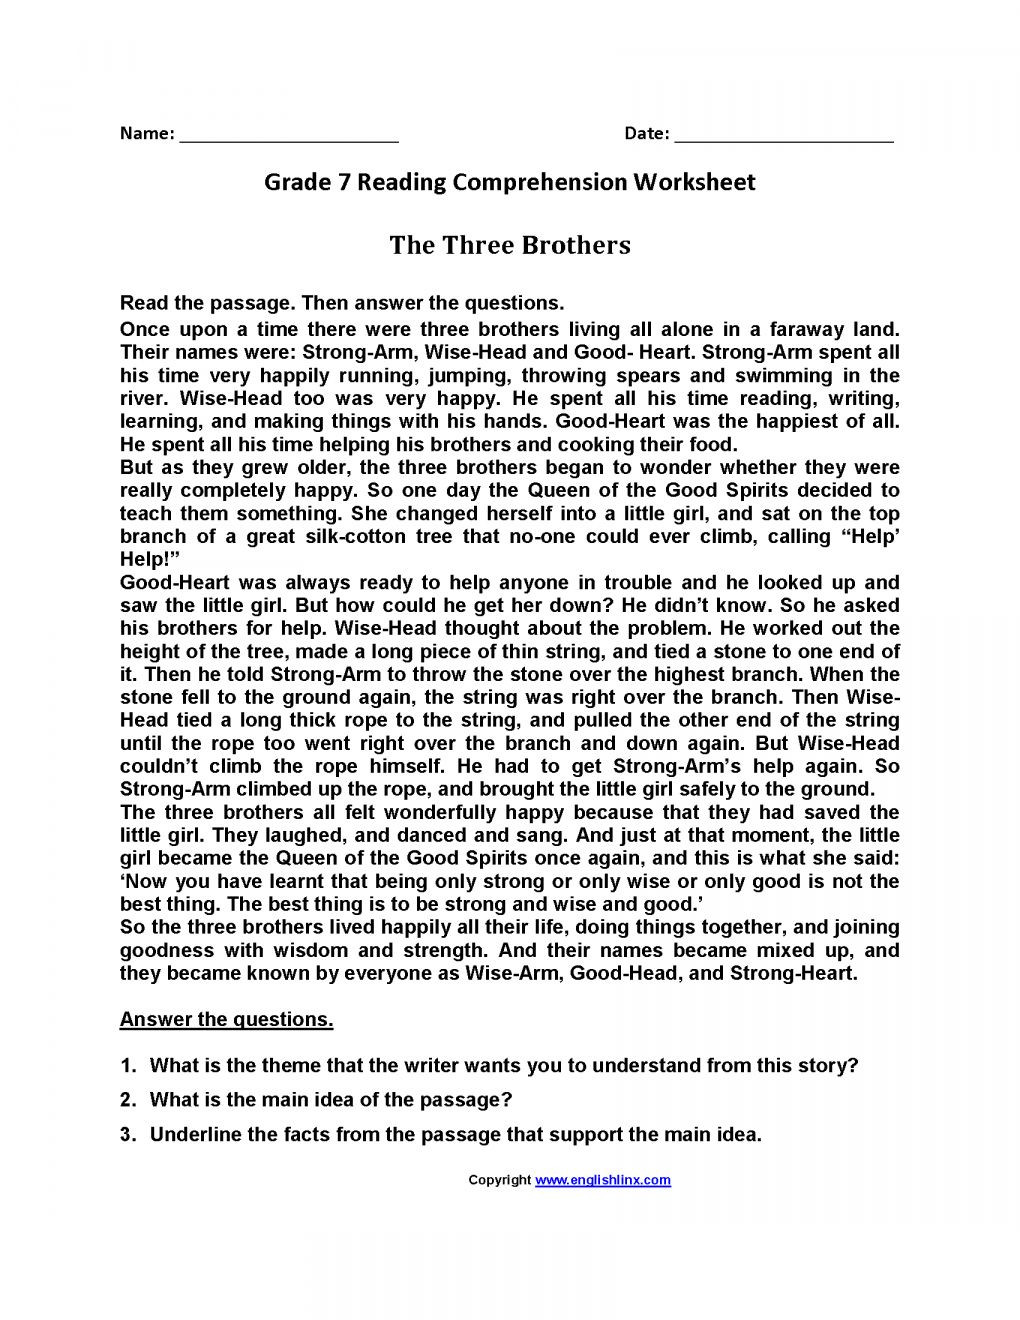 Reading Comprehension 7th Grade Worksheet 12 7th Grade Summarizing Worksheet